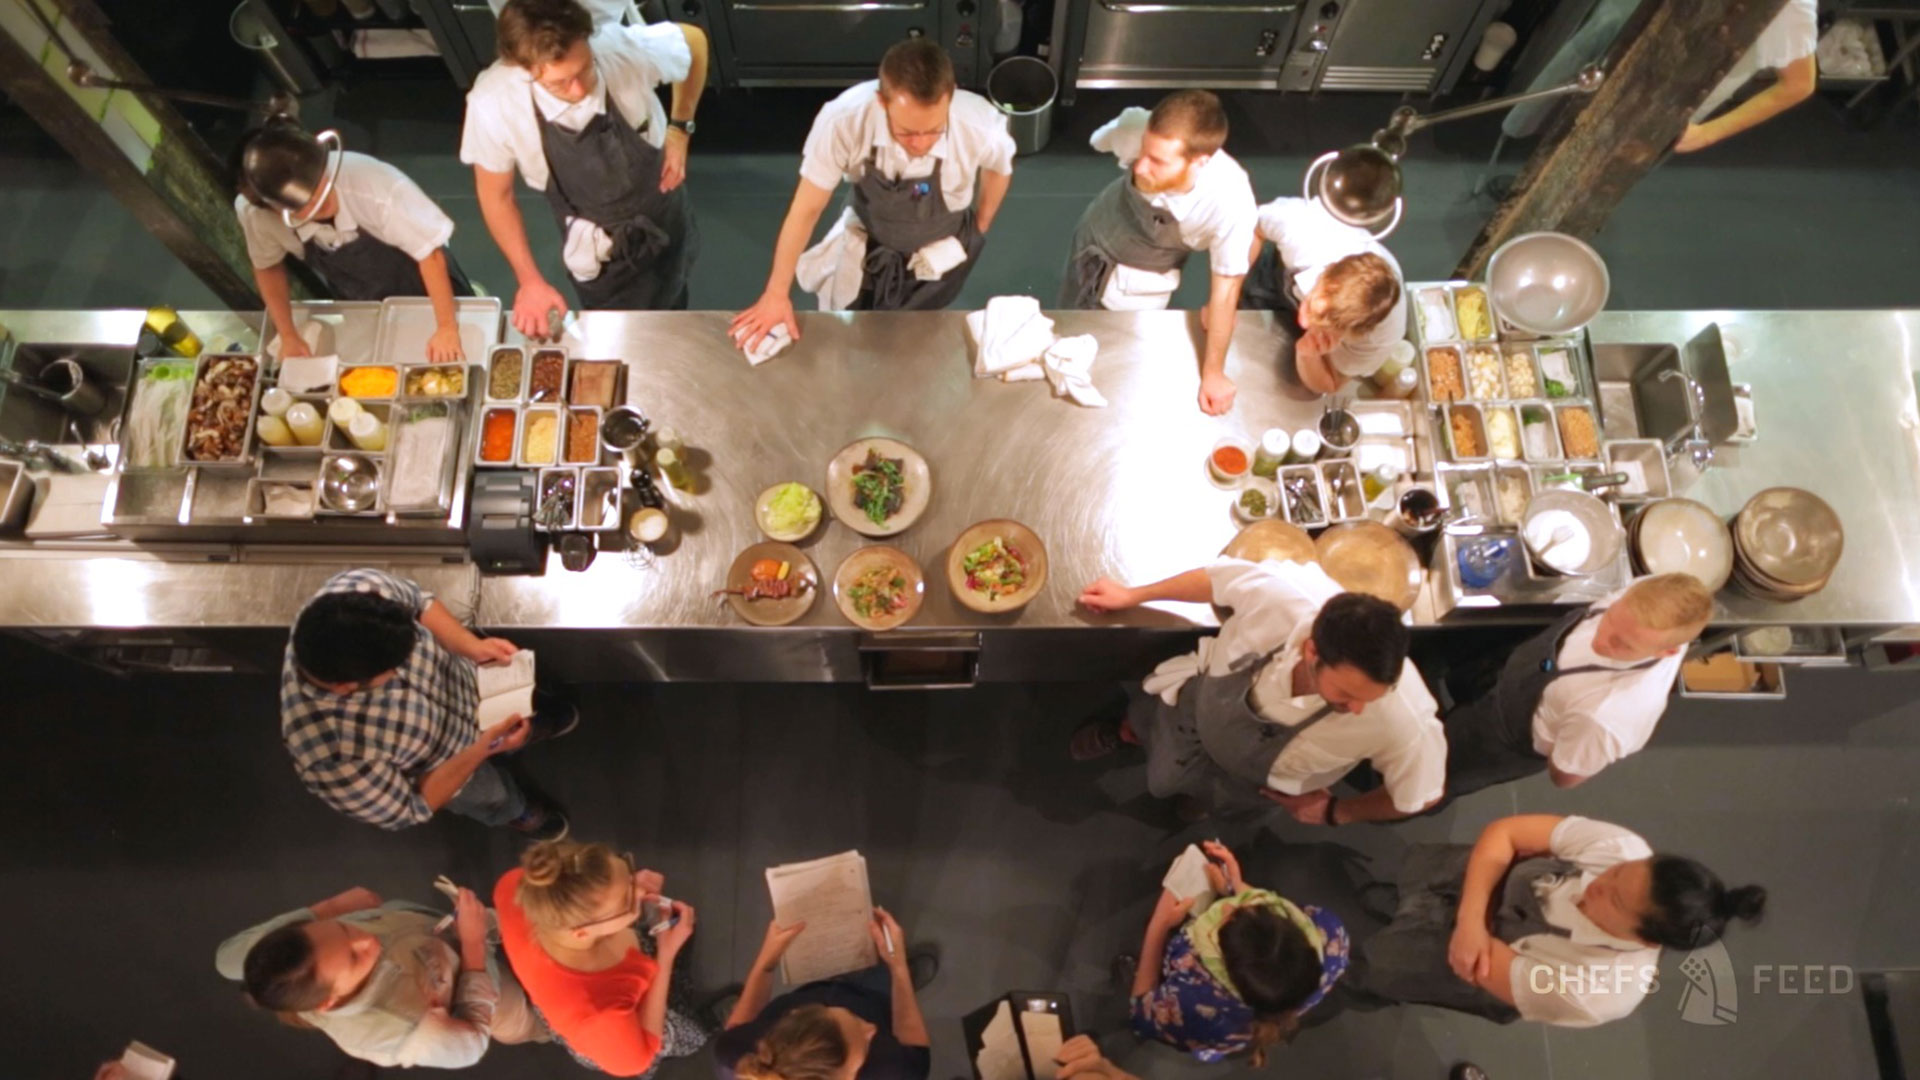 Chefs Feed: Opening Night at The Progress